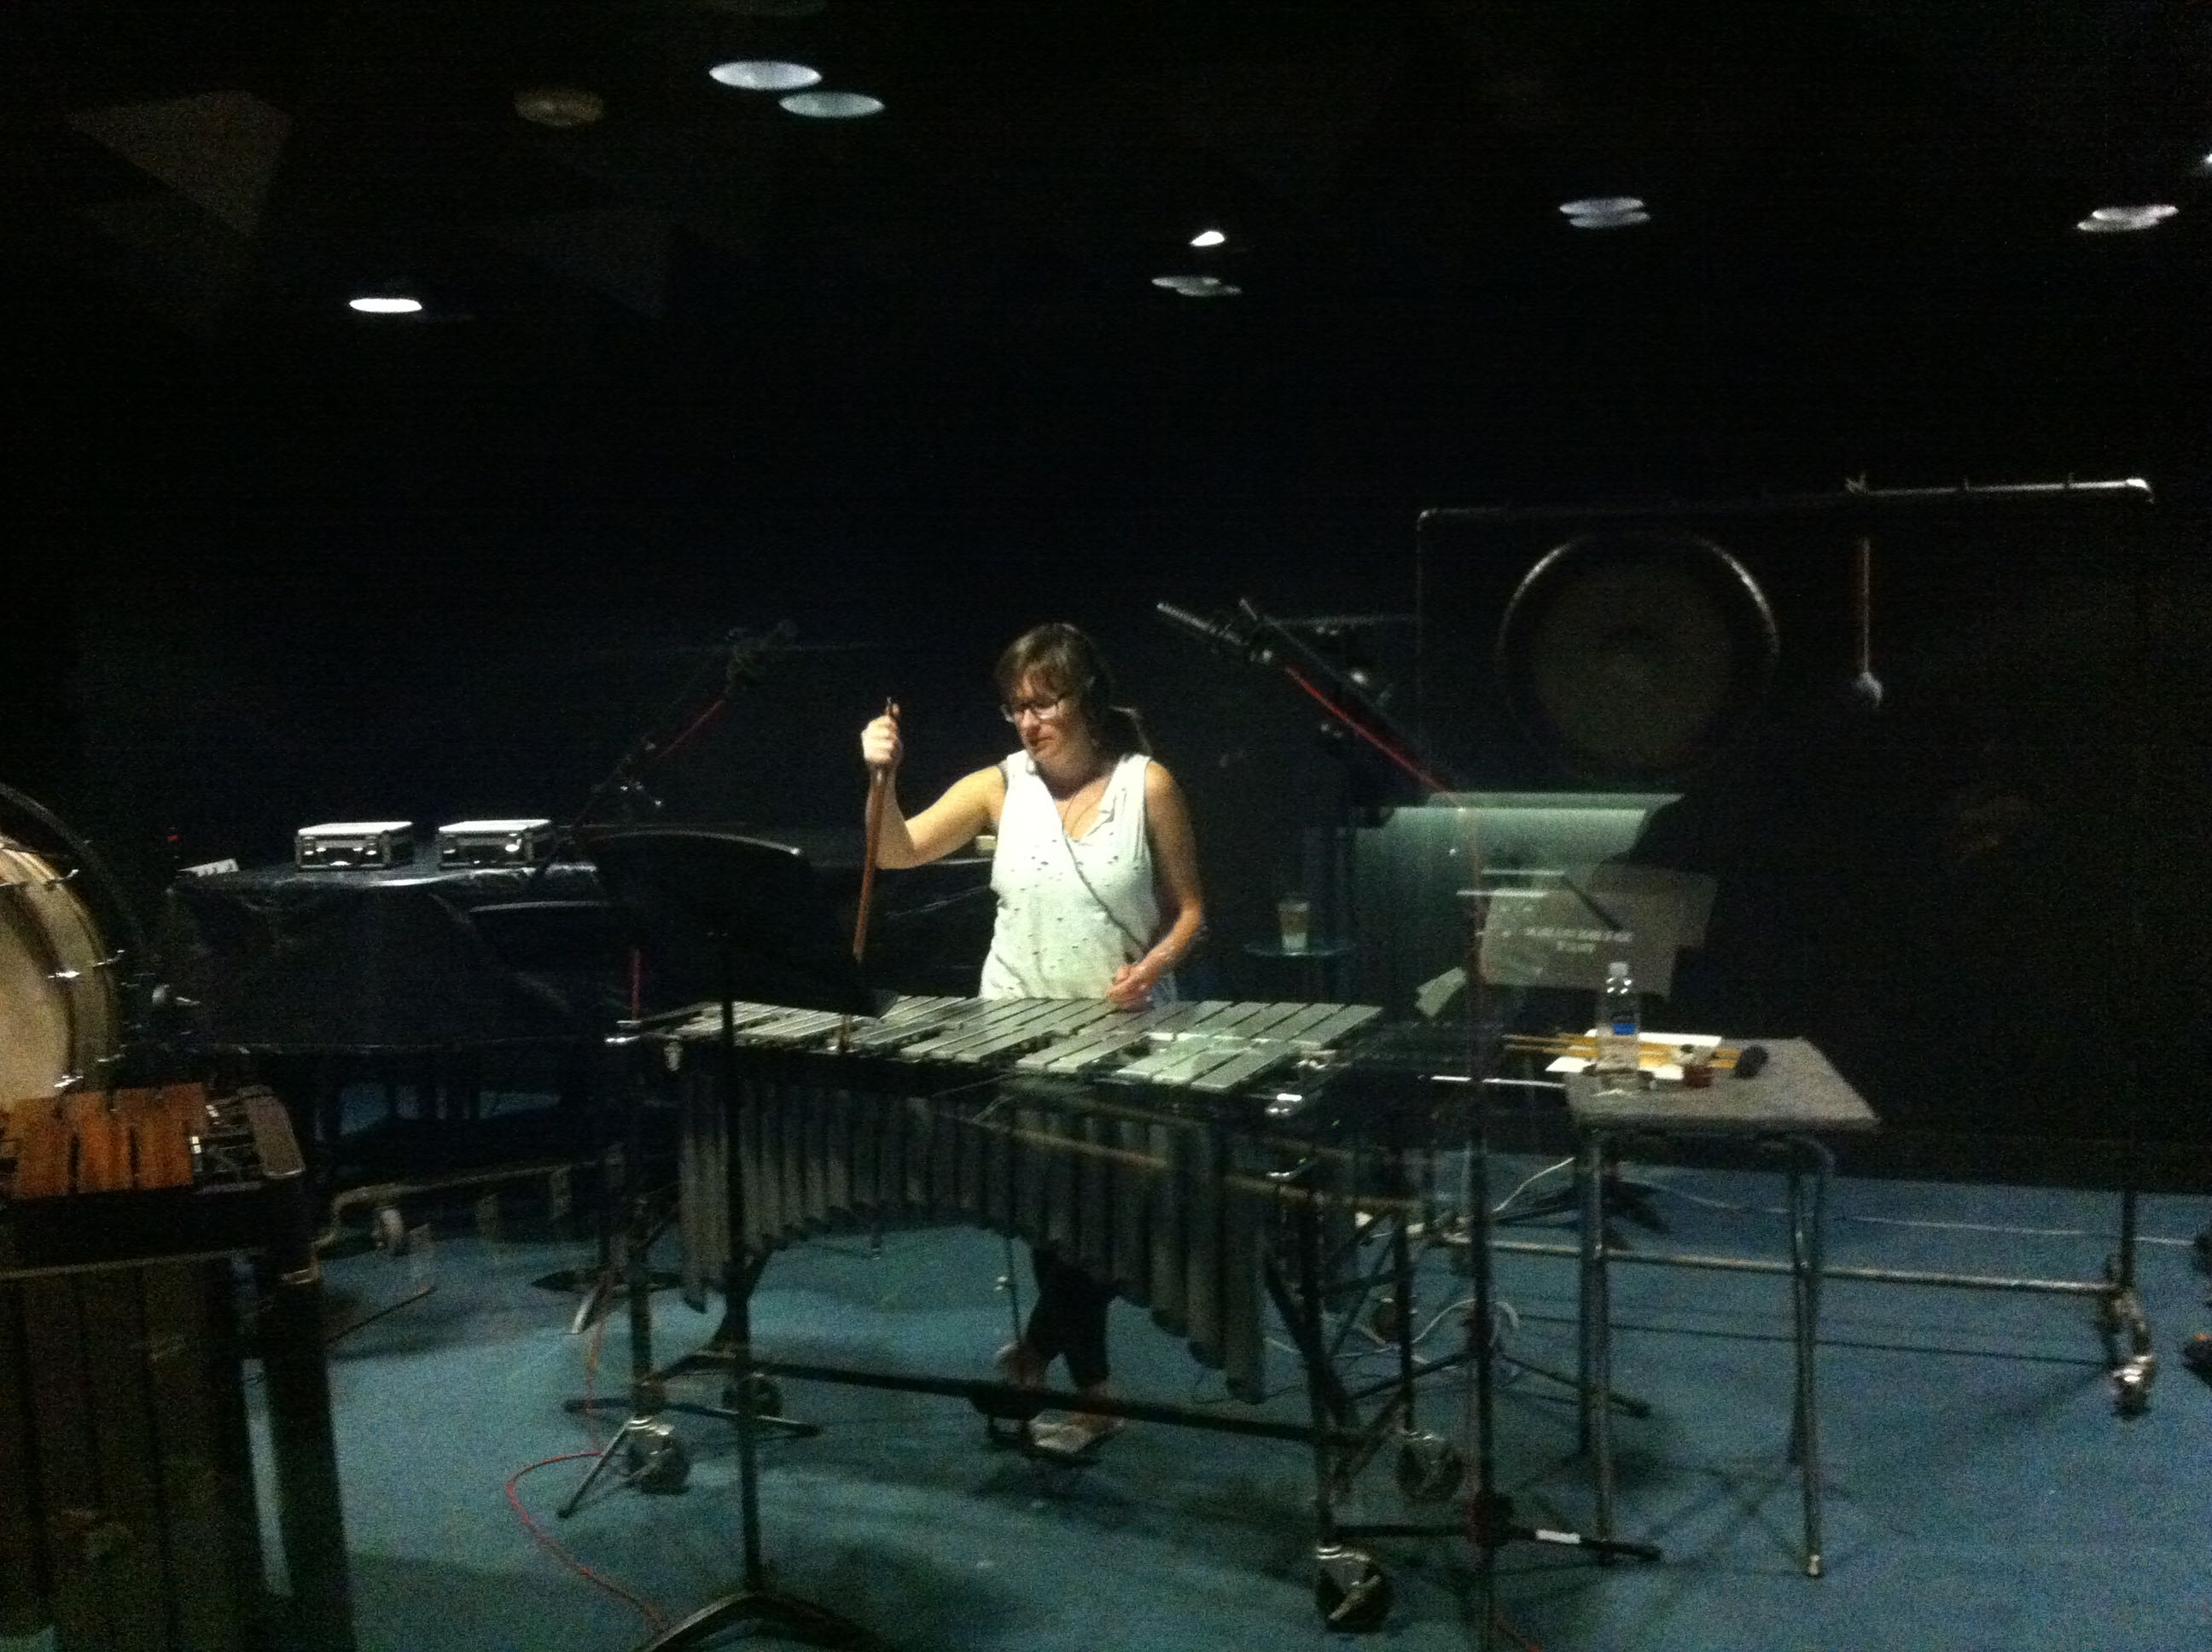 Jenica bowing the vibraphone